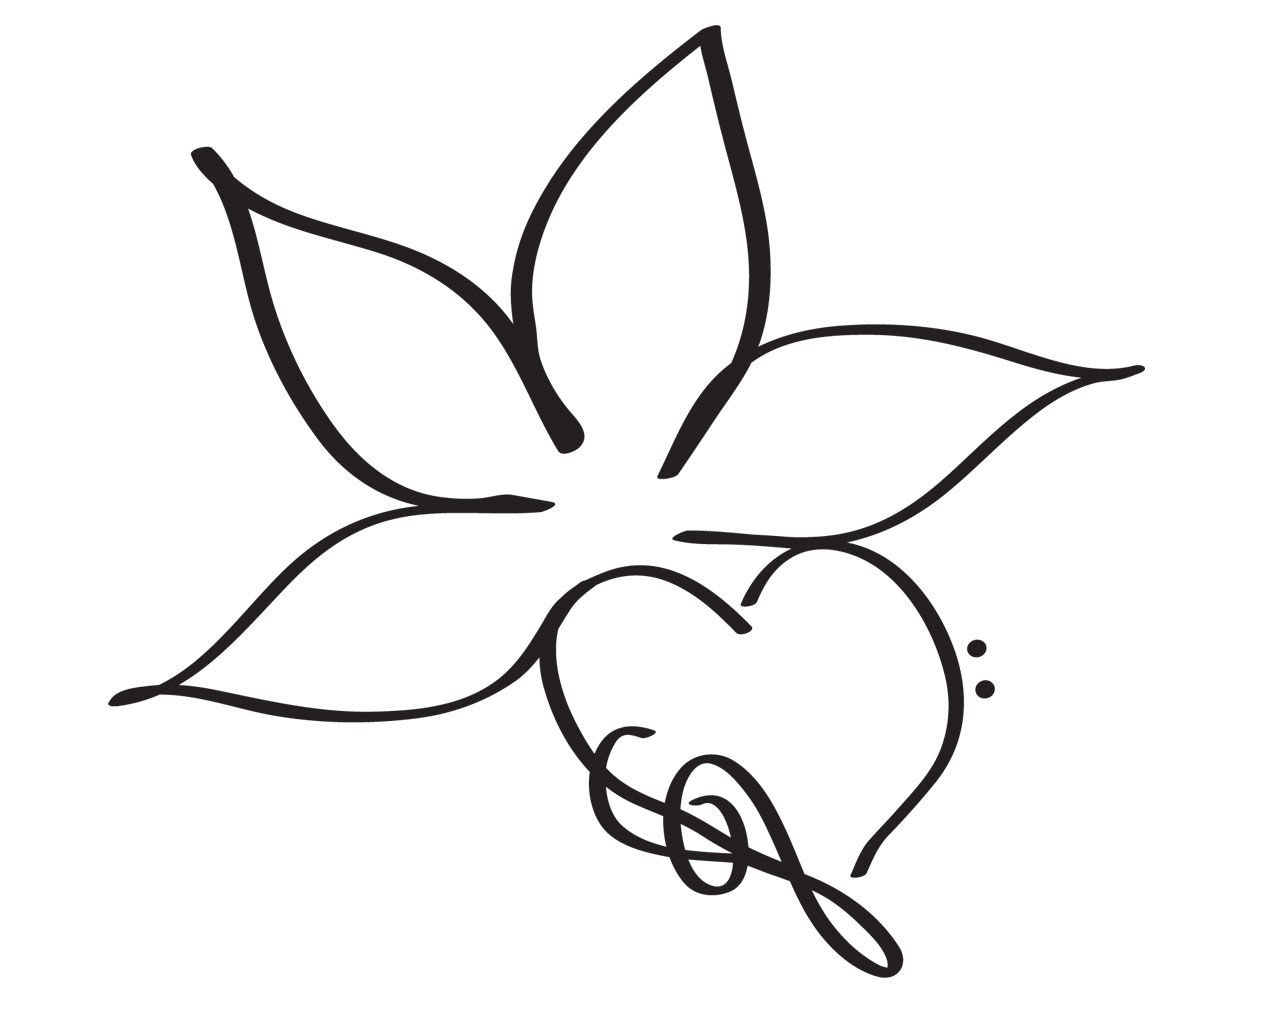 Simple Flower Drawings Simple Flower Tattoo Simple Tattoo Designs Easy Tattoos To Draw